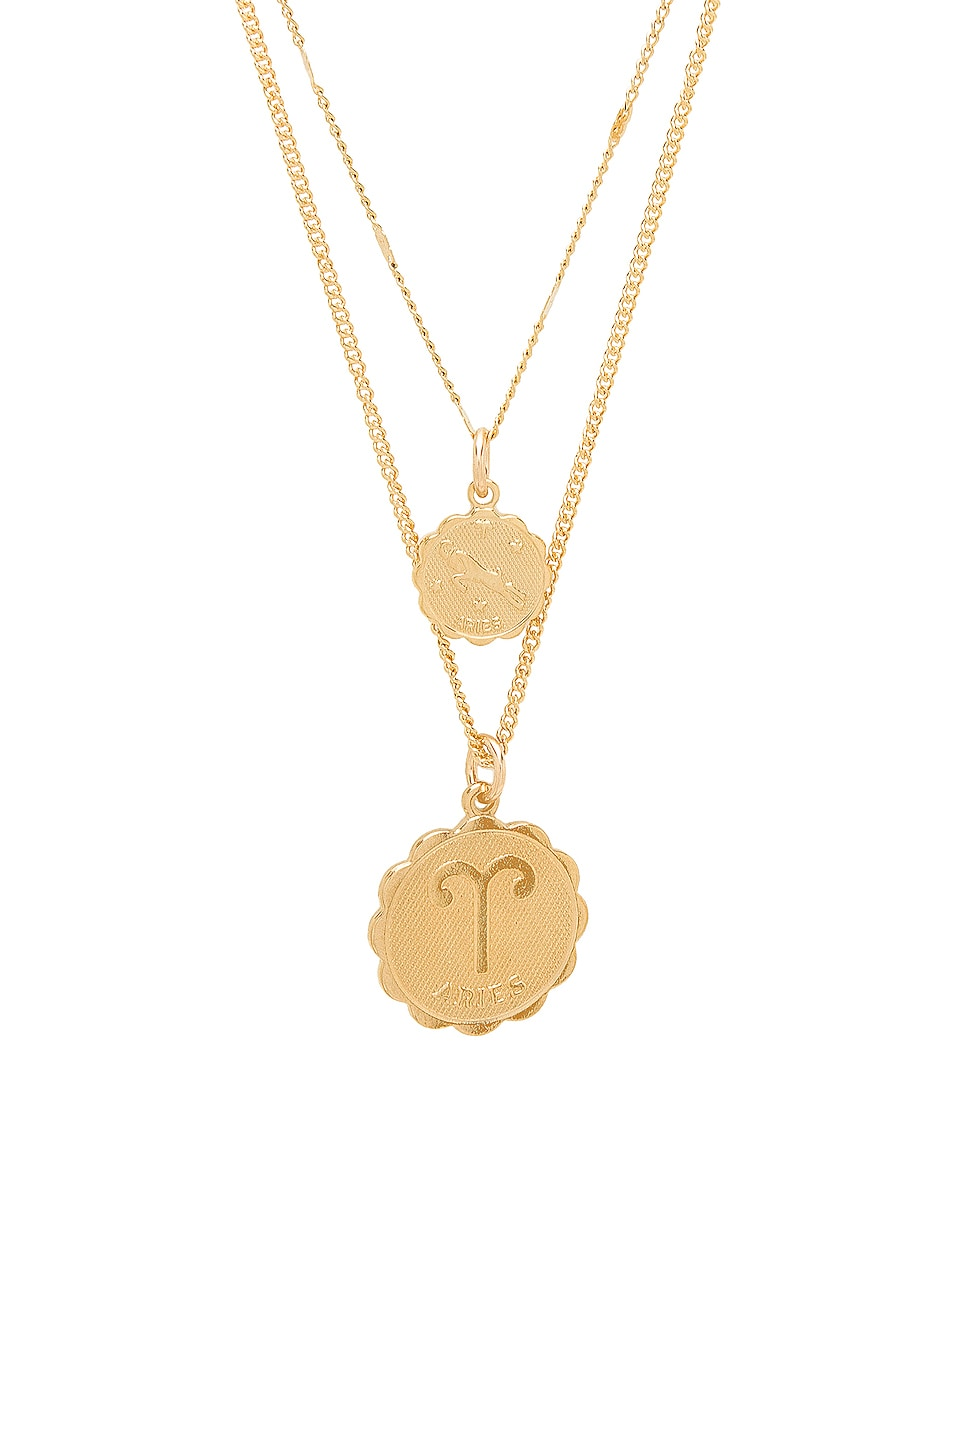 necklace zodiac leo products lauridsen pernille of copy